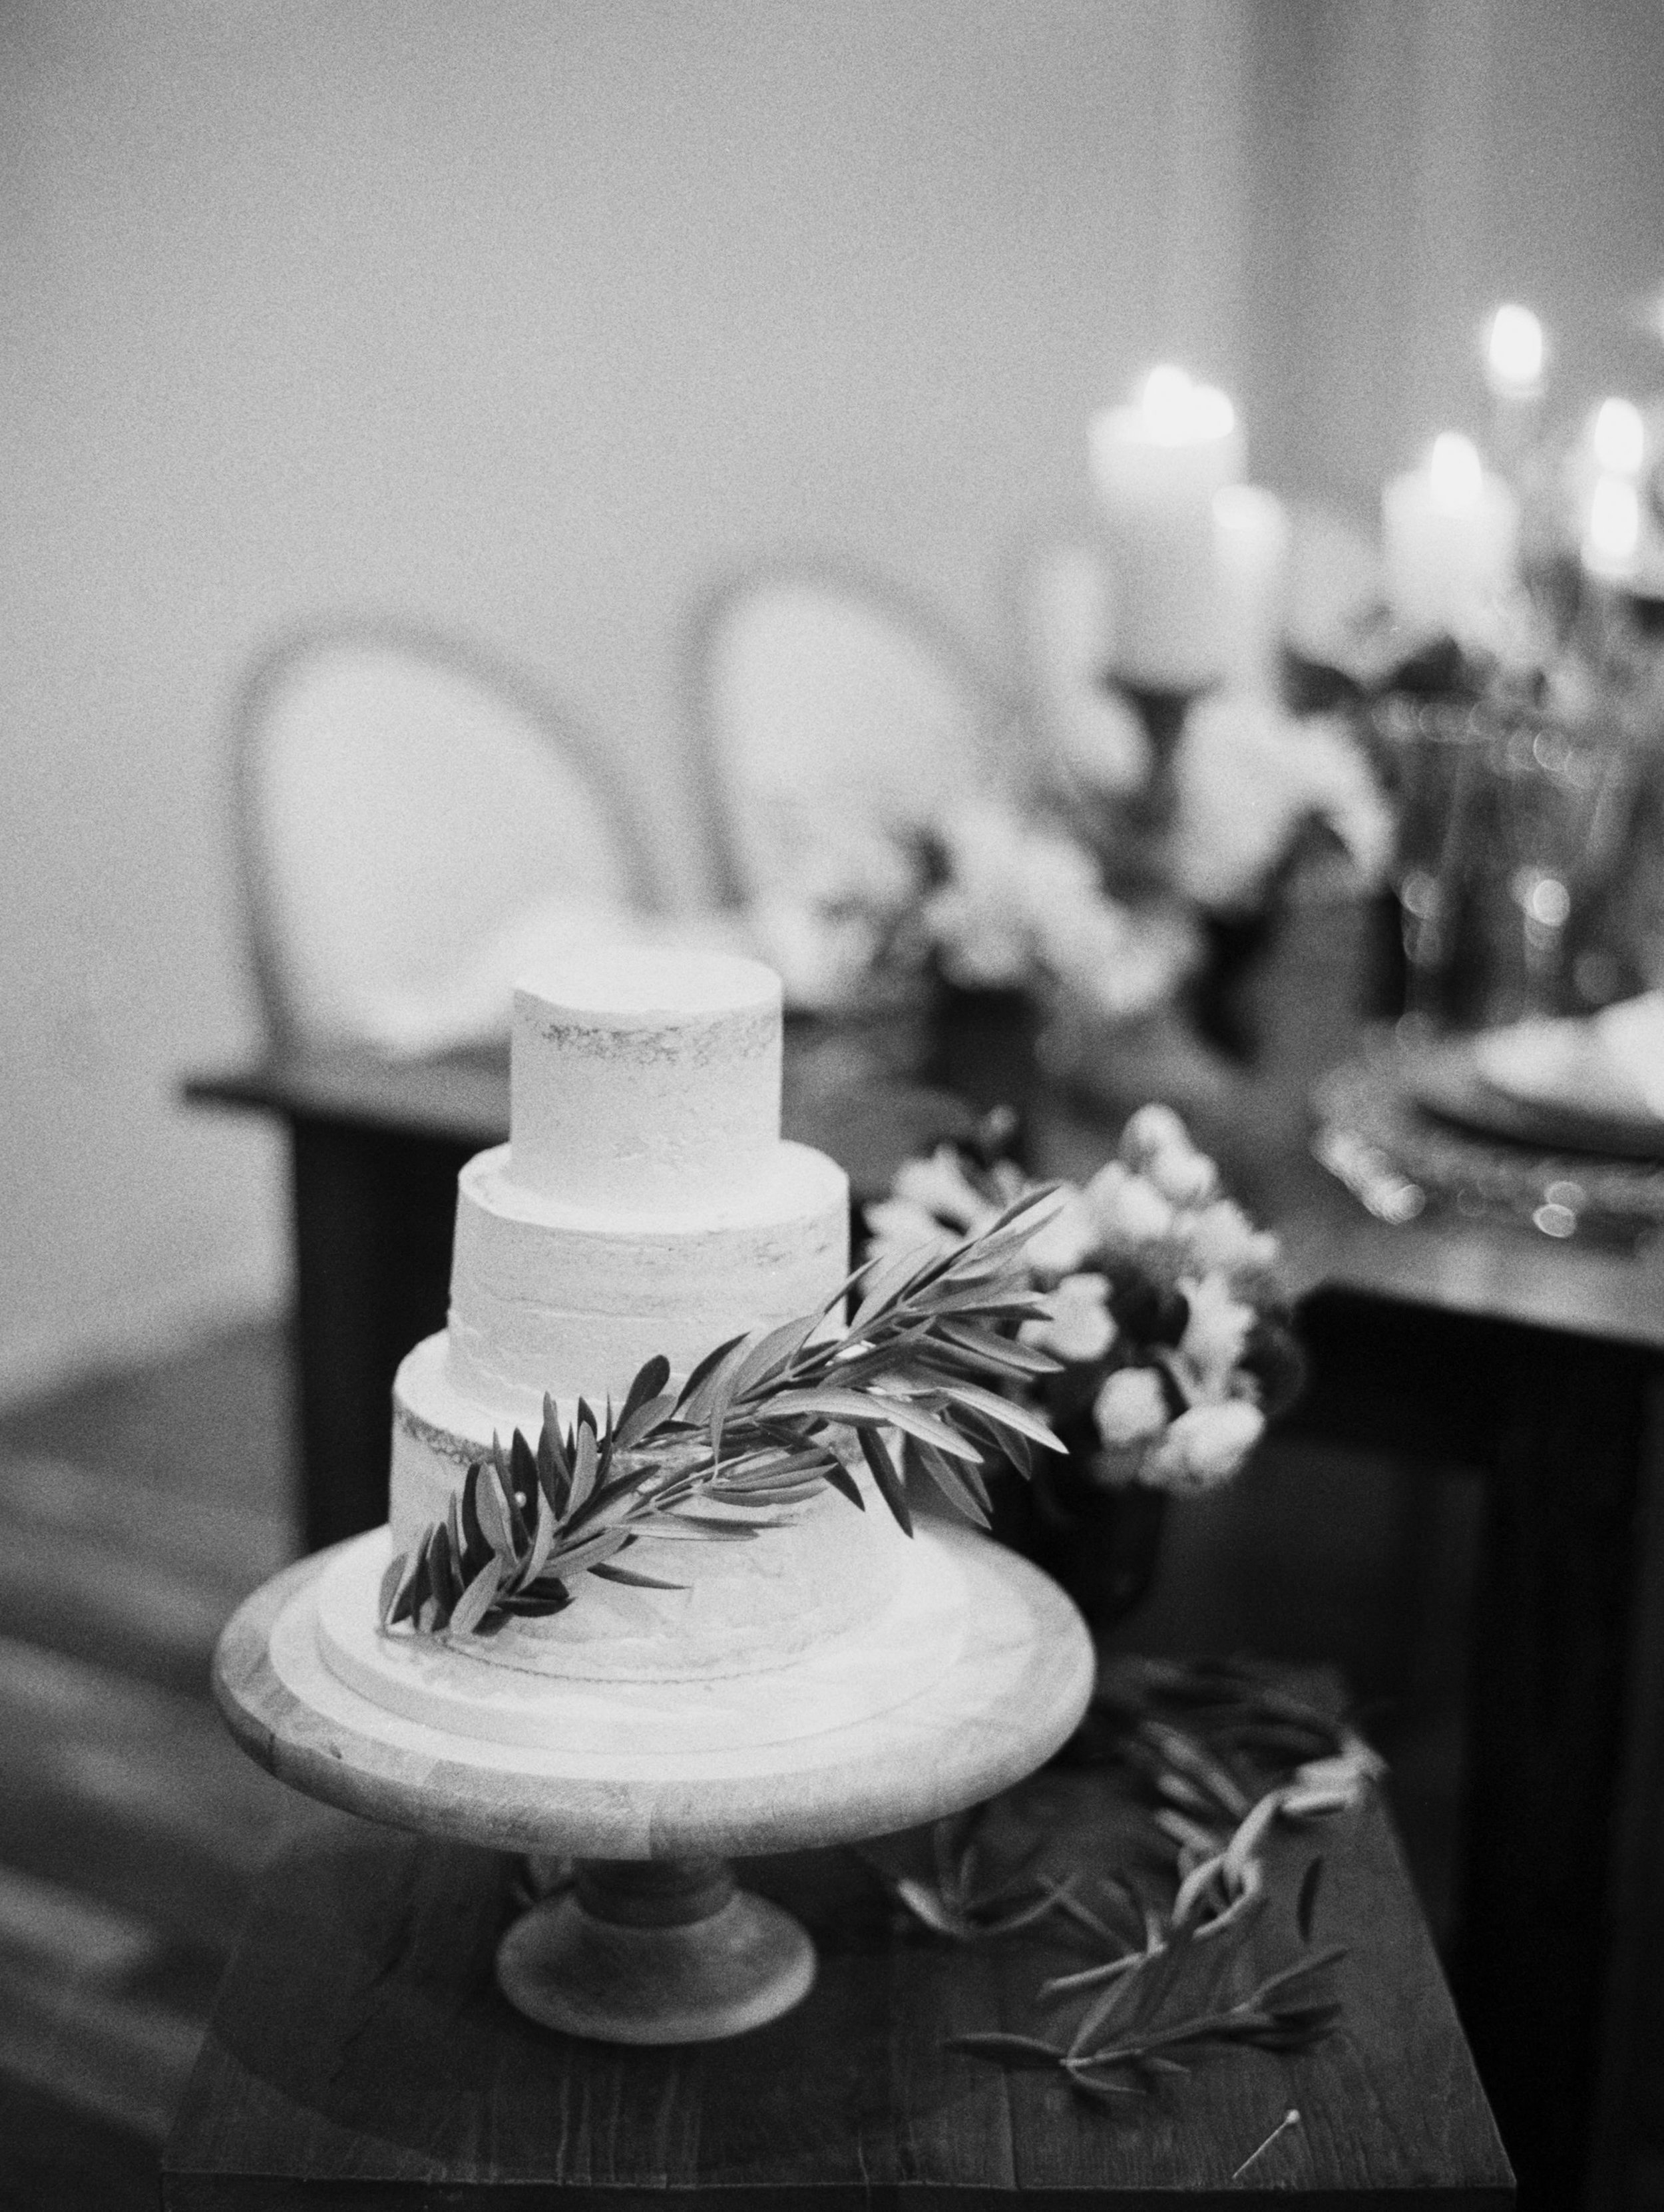 boho-inspired-wedding-at-casa-bella-in-sunol-california-3.jpg